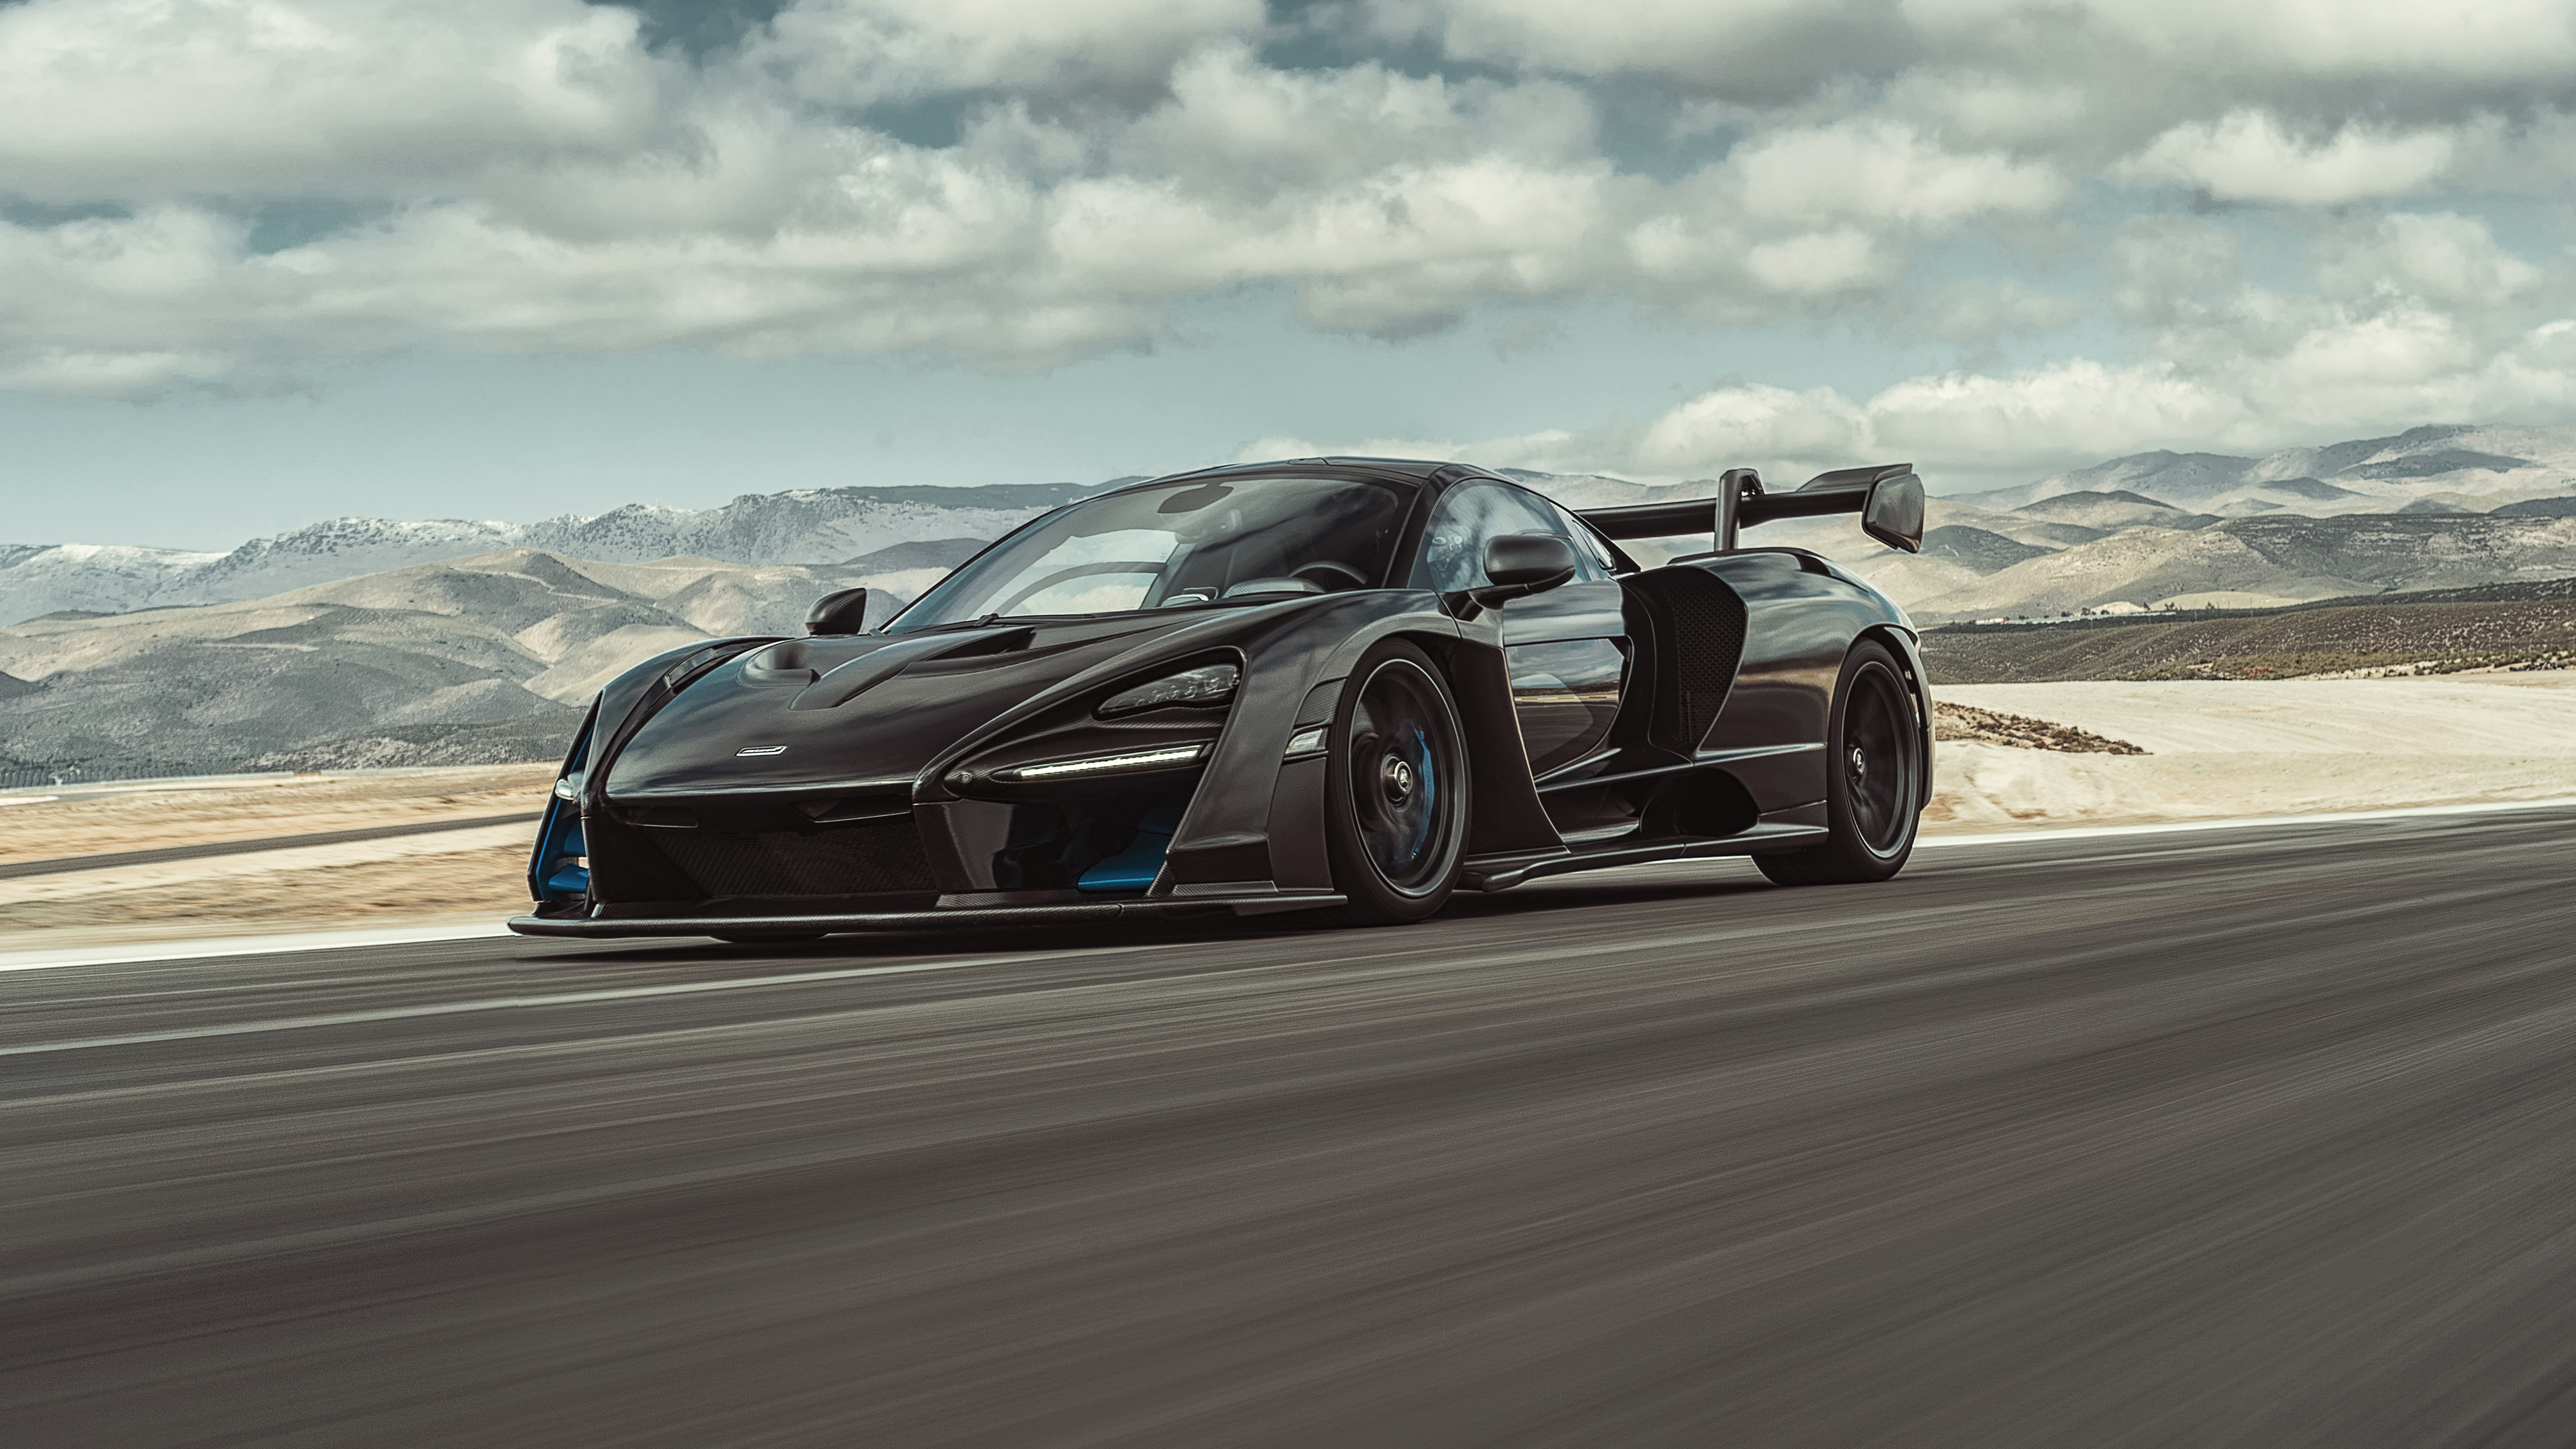 McLaren Senna 600LT 4K Wallpaper | HD Car Wallpapers | ID ...